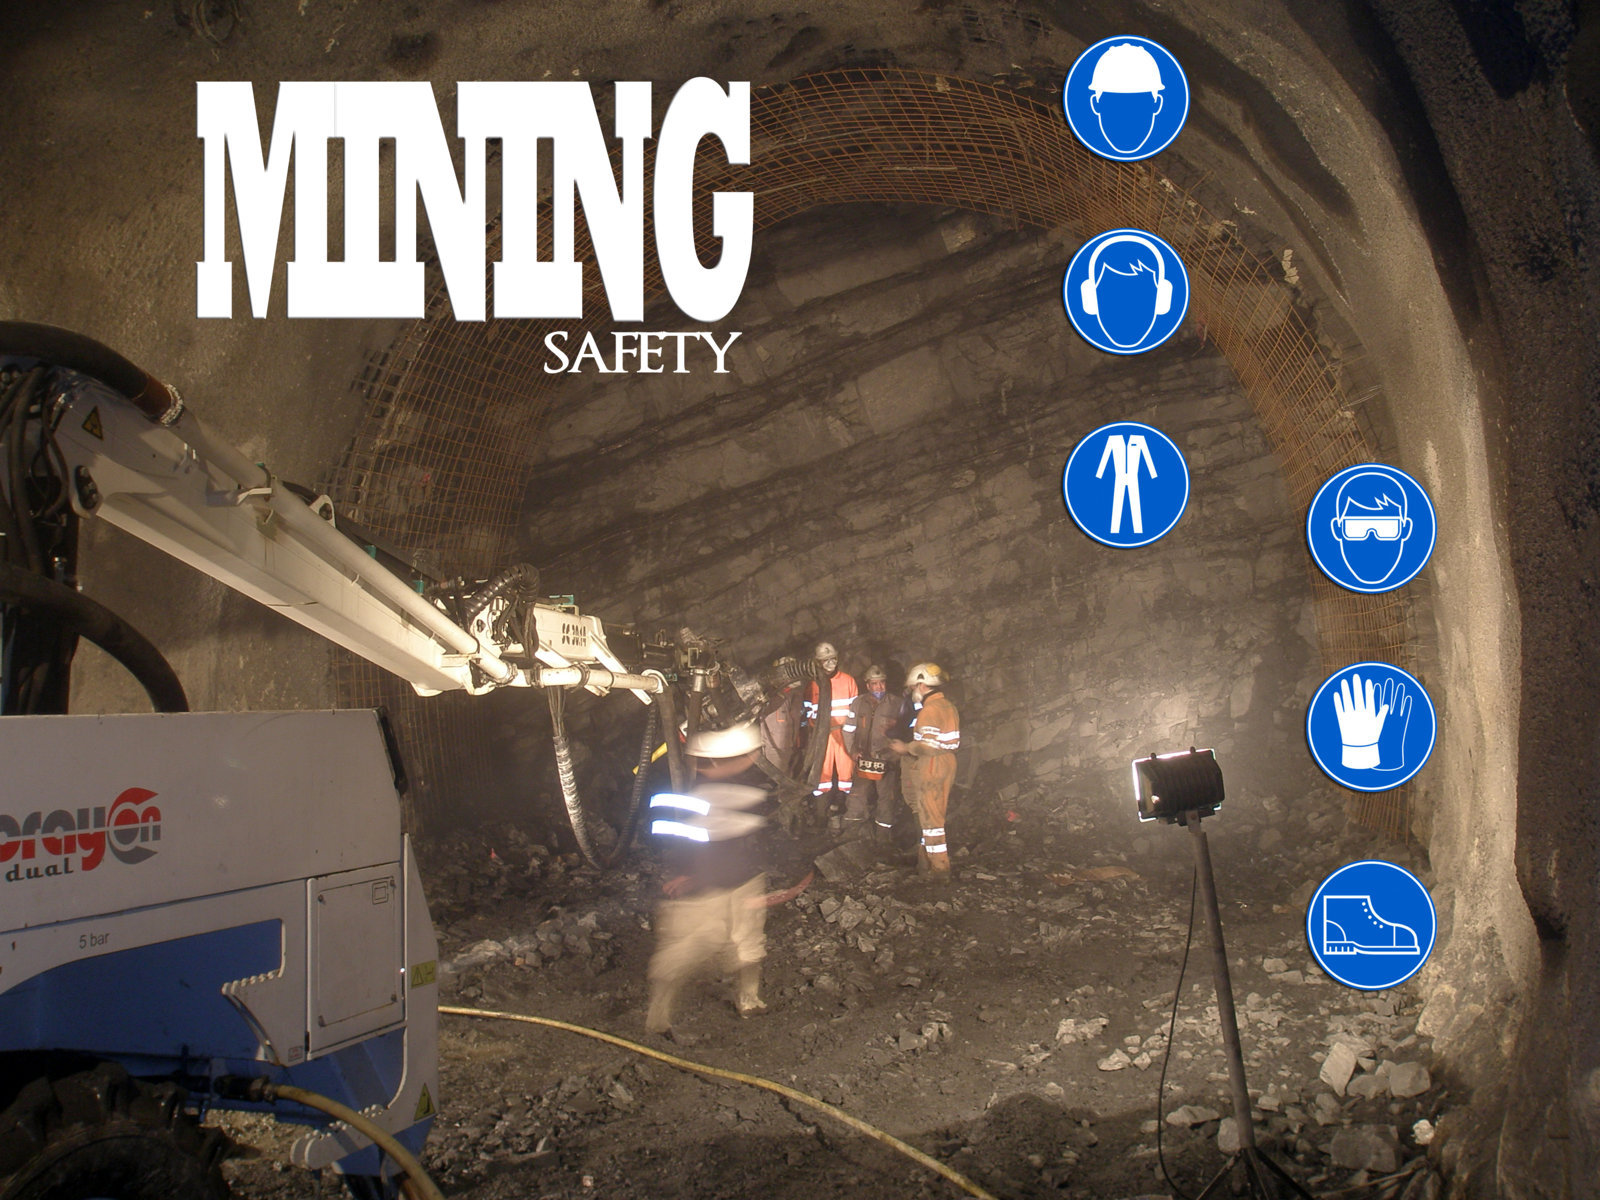 mining safety